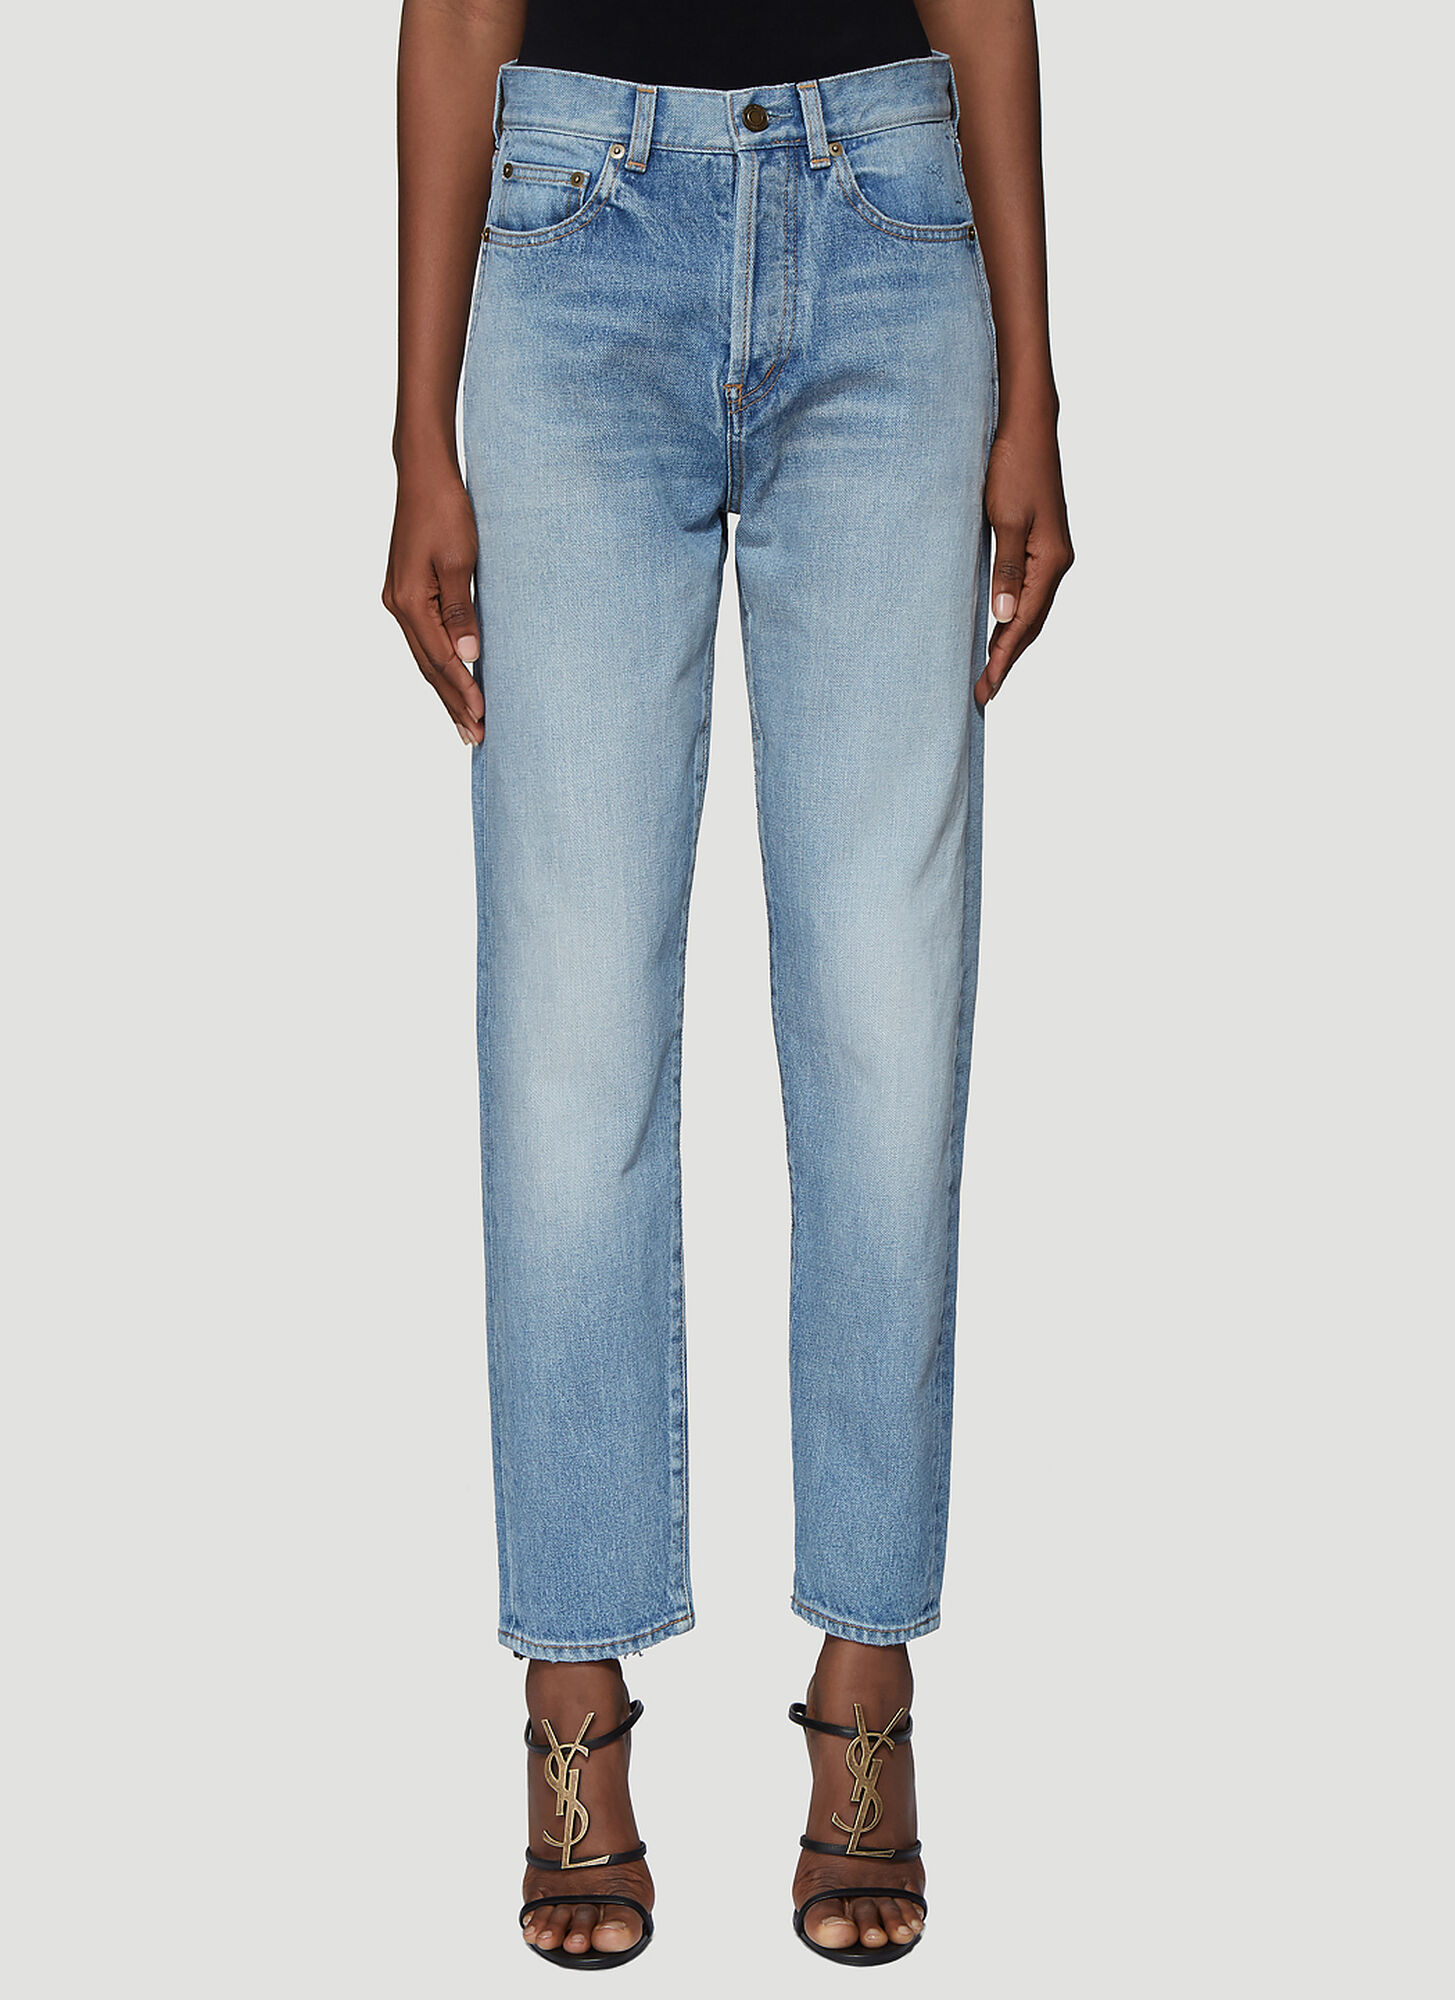 Saint Laurent Frayed Hem Denim Jeans in Blue